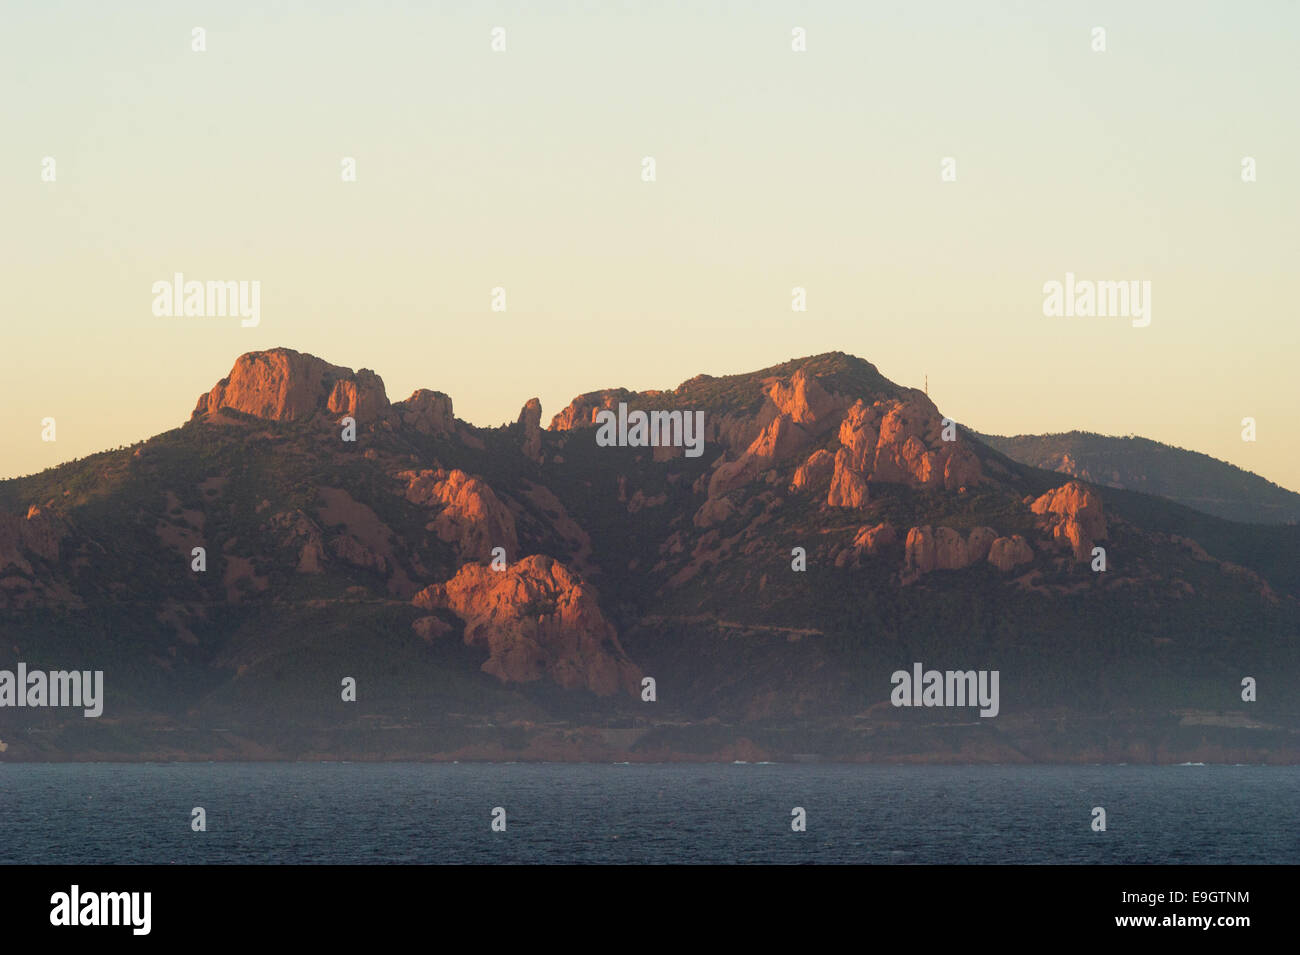 Mountains on the coast near Cannes, France, at sunset - Stock Image